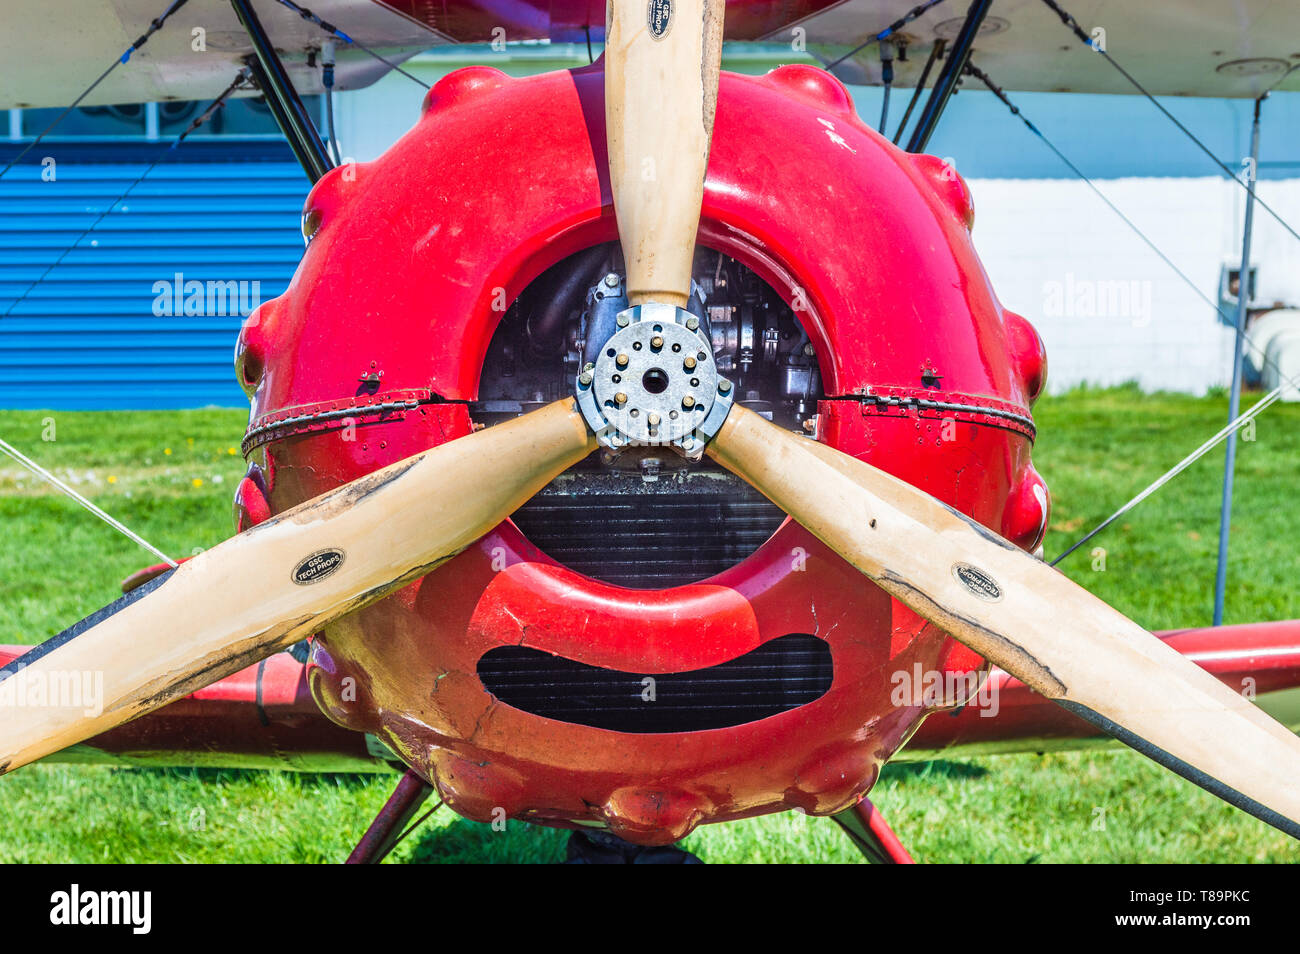 Propeller and nose of red vintage Murphy Renegade bi-plane at Delta Heritage Airpark. - Stock Image